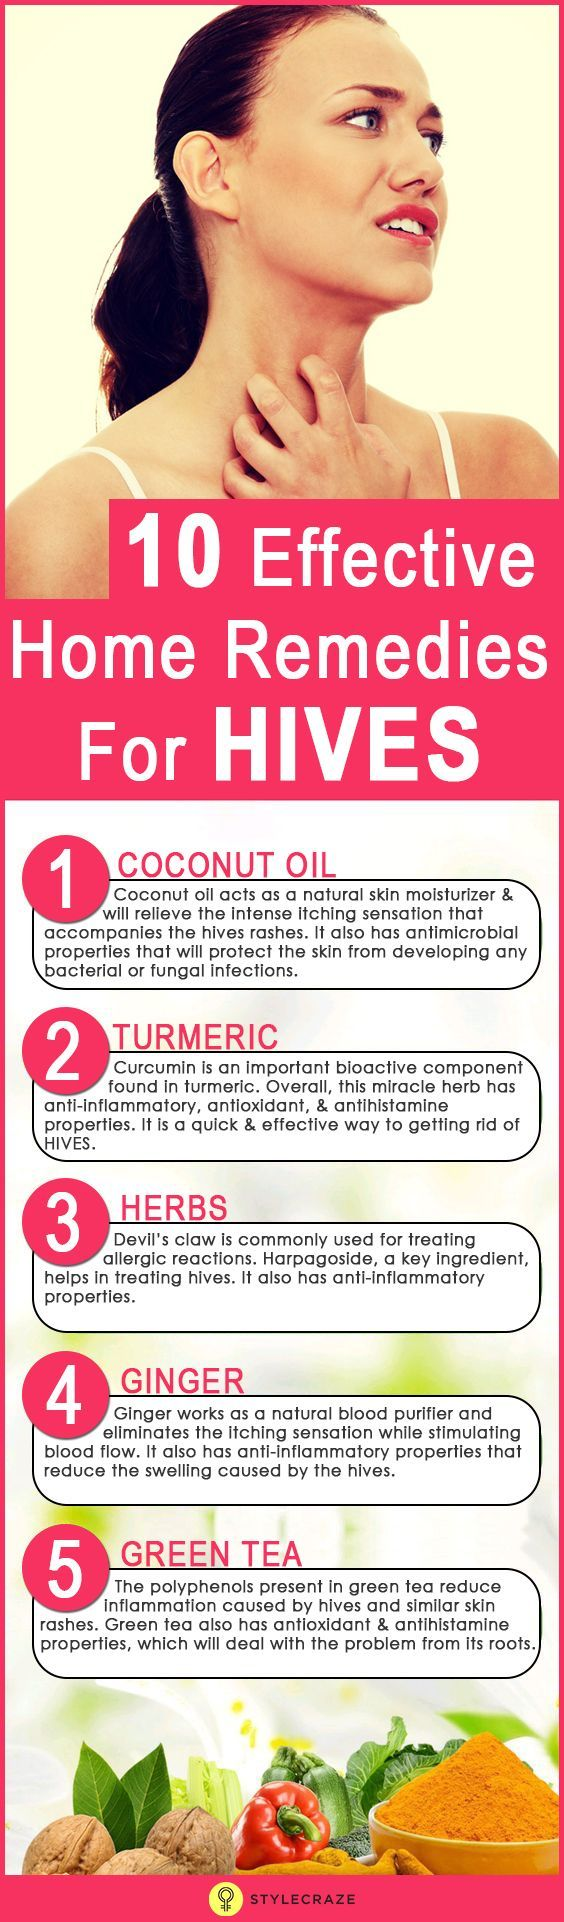 10 Effective Home Remedies For HivesSabina Sayal